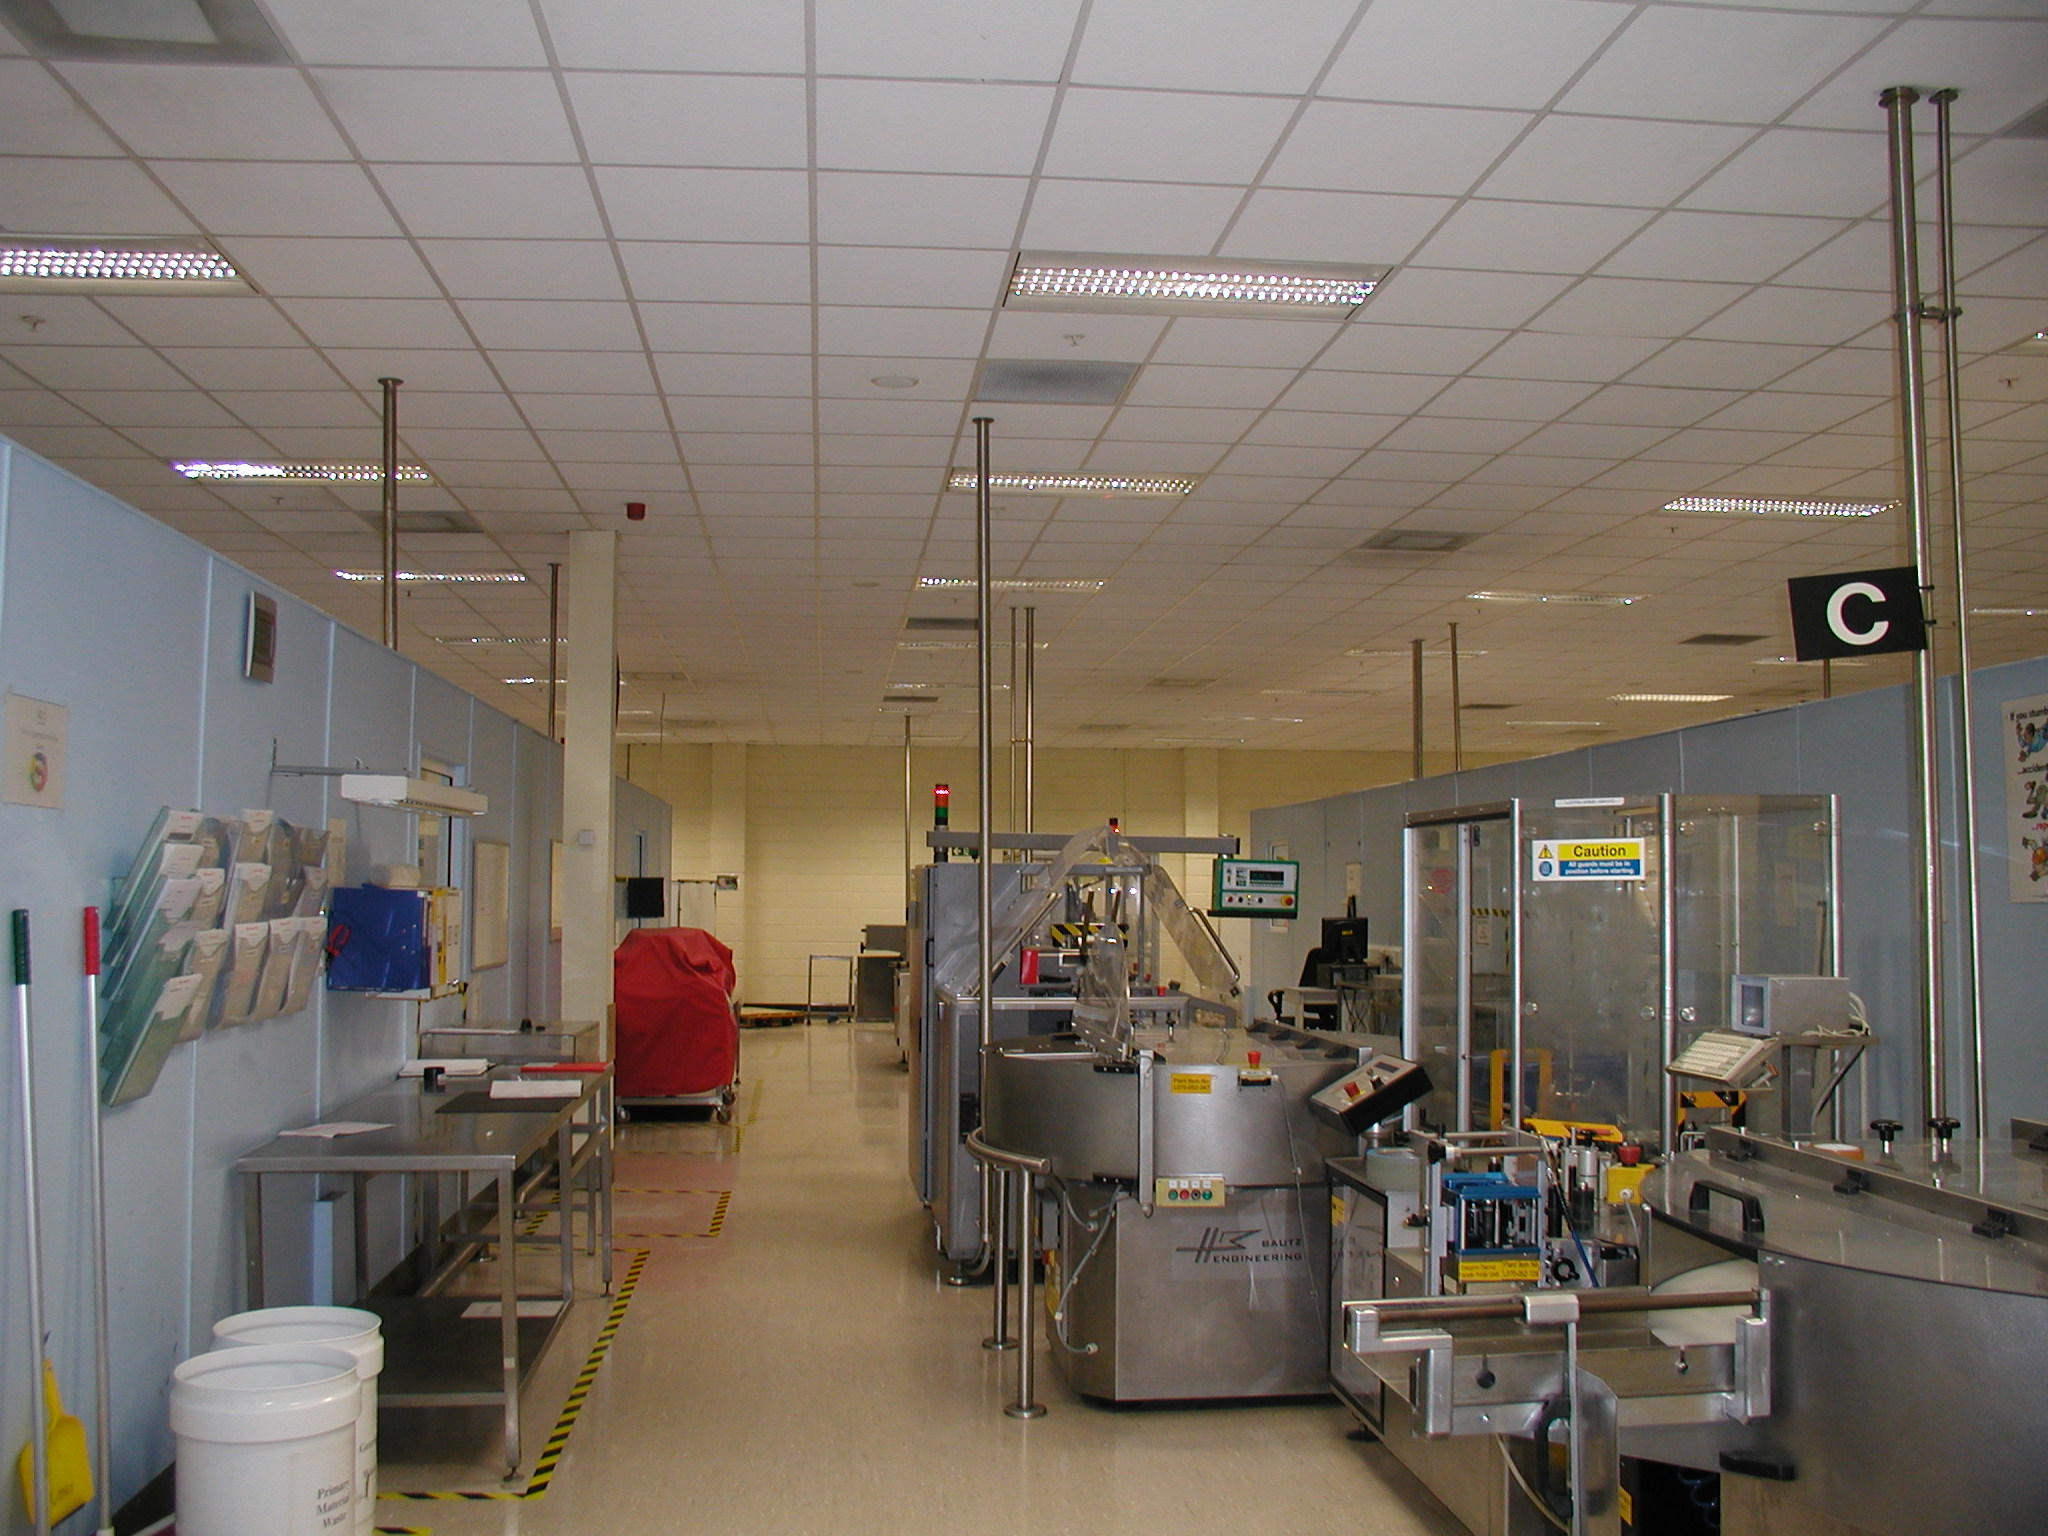 Packaging Area GE - ecos occupancy sensors